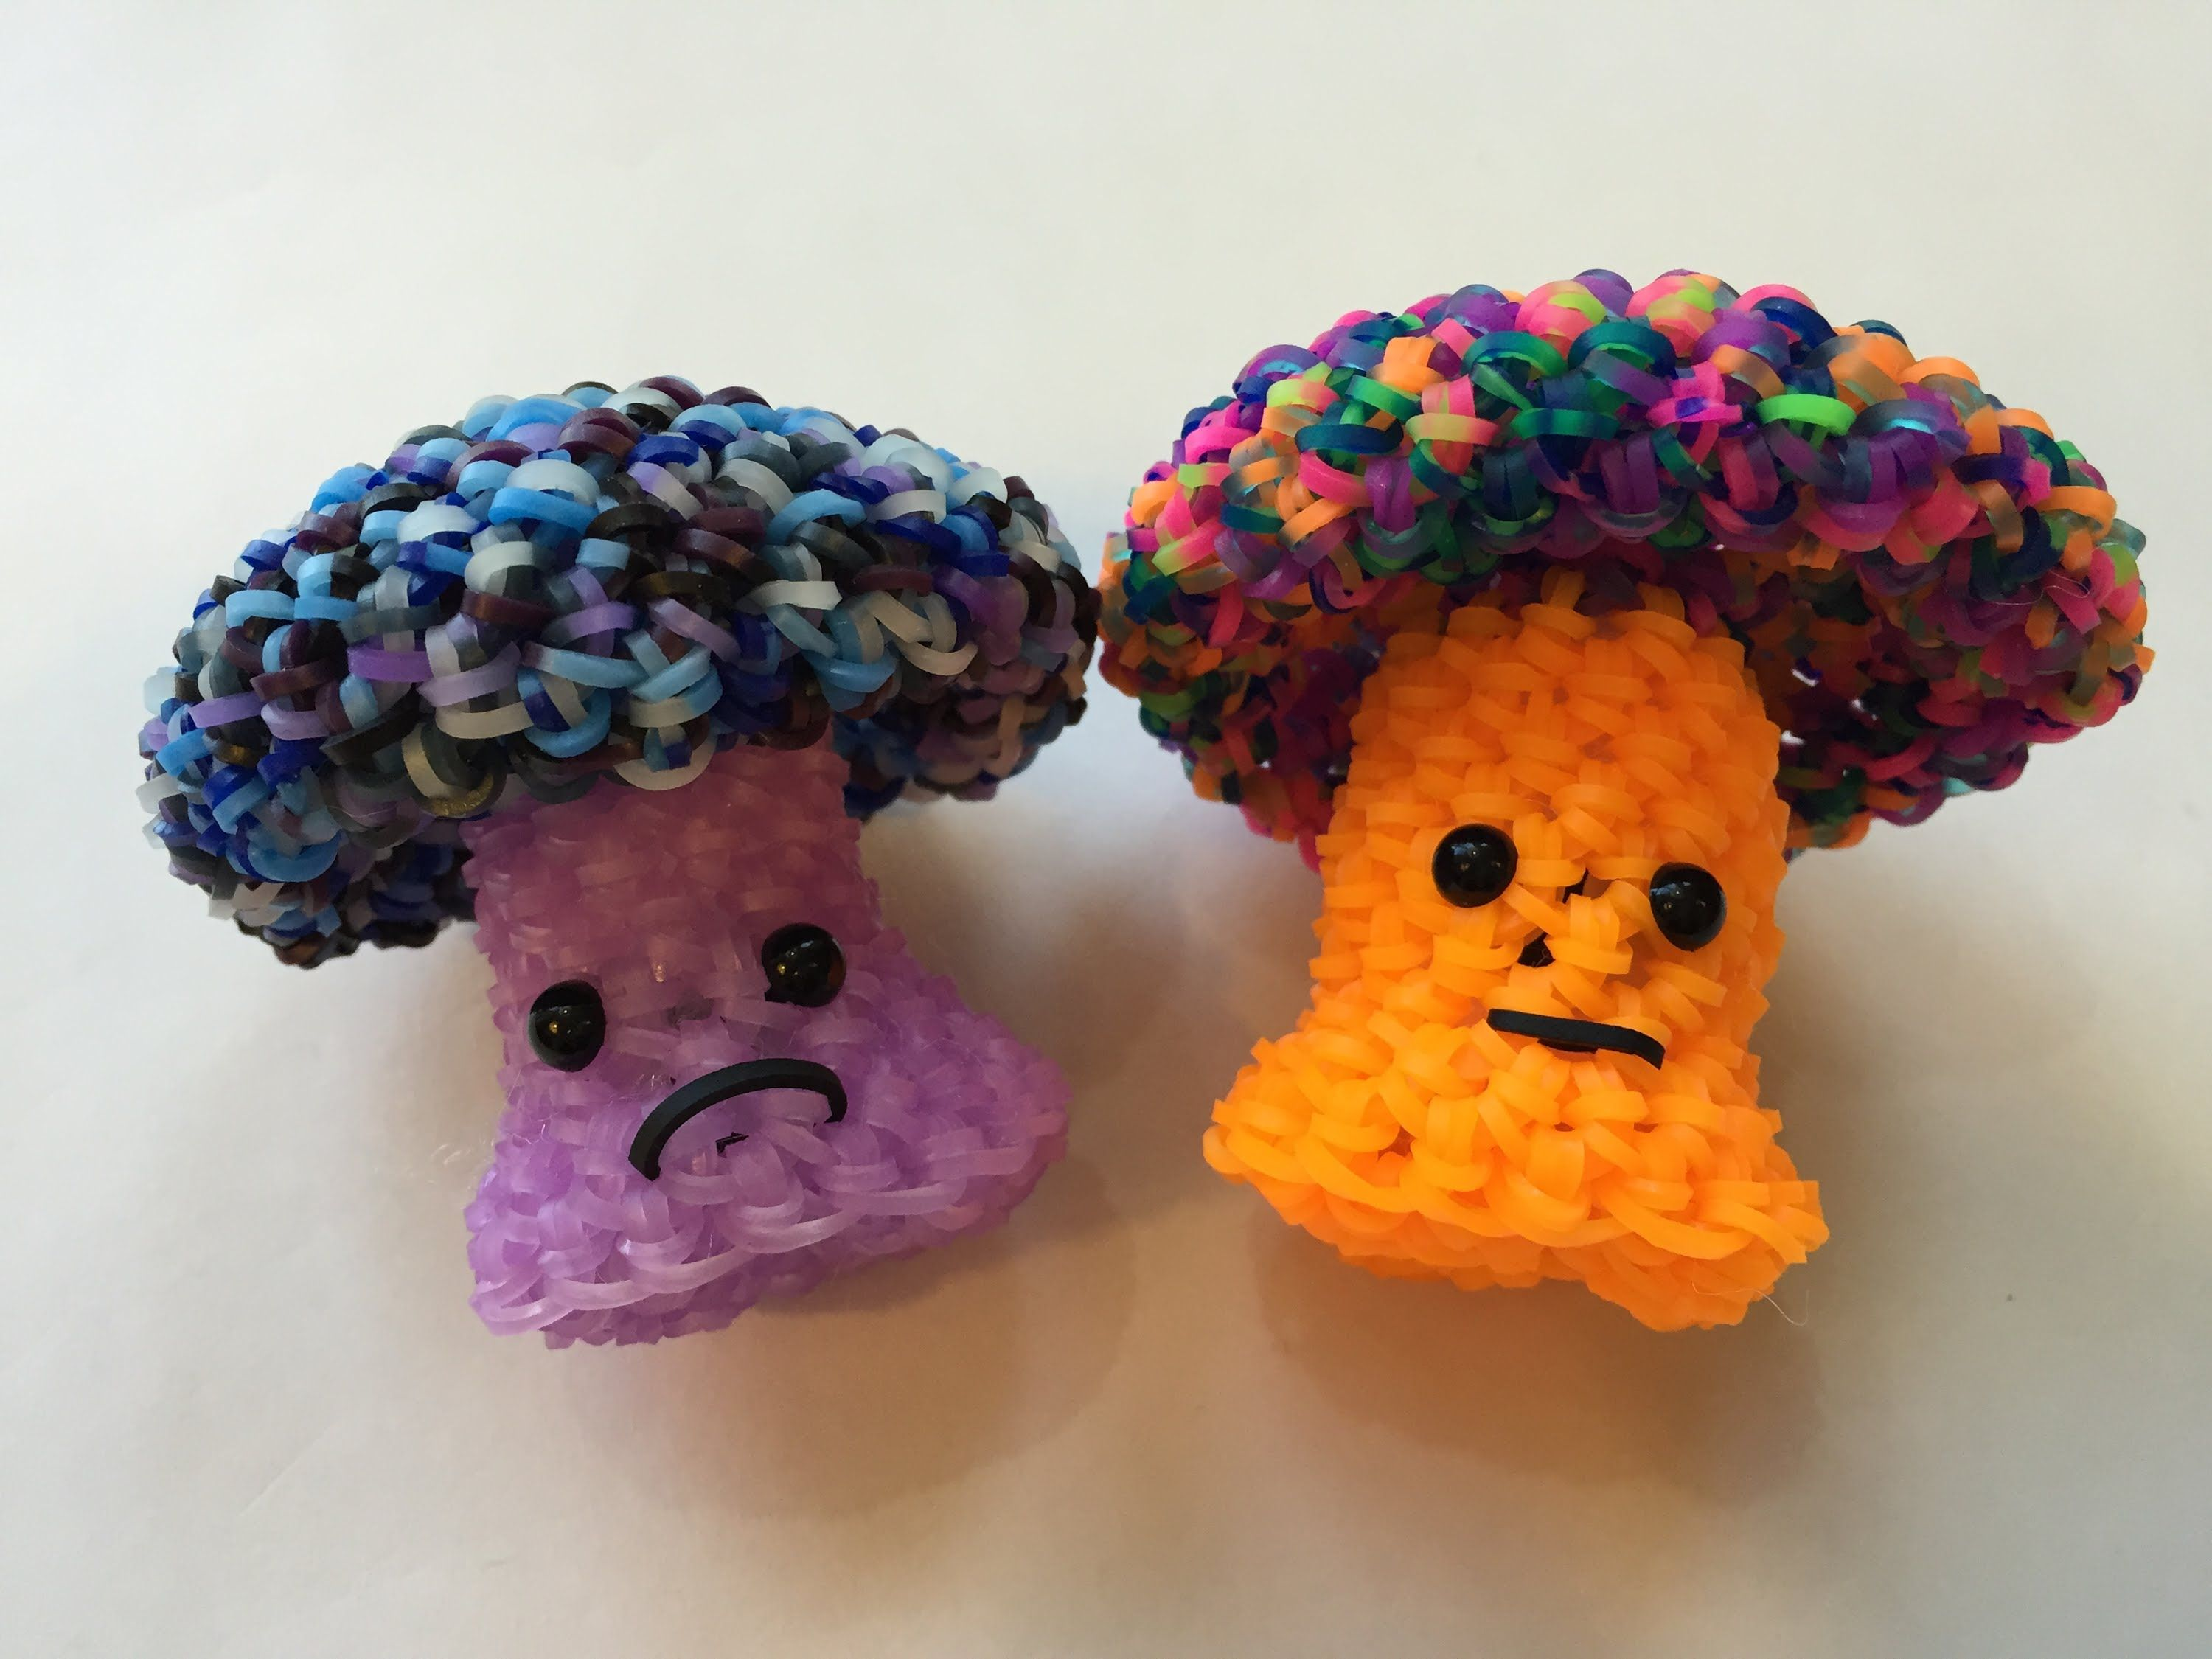 Amigurumi Loom Patterns : Mushroom tutorial rainbow loom kawaii loomigurumi amigurumi hook